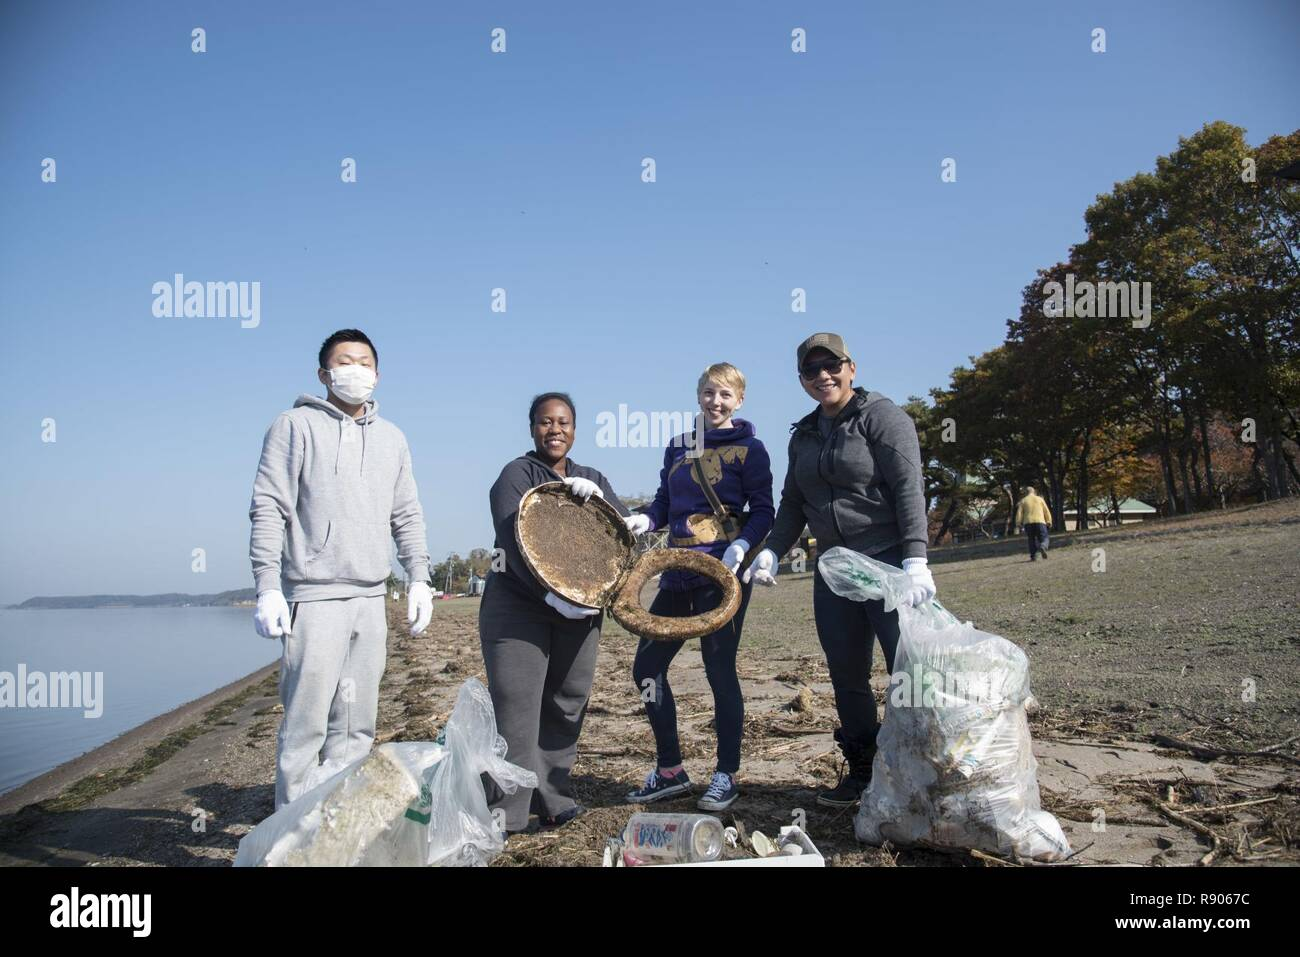 Team Misawa personnel hold their trash collection after a cleanup in Misawa City, Japan, Oct. 28, 2017. The group of volunteers picked up approximately 100 pounds of trash, collecting everything from small plastic bottles to a large toilet seat. As an effective community outreach event, Misawa Air Base often holds site cleanups to reinforce the strong foundation of trust between the U.S. and its host nation of  Japan. - Stock Image